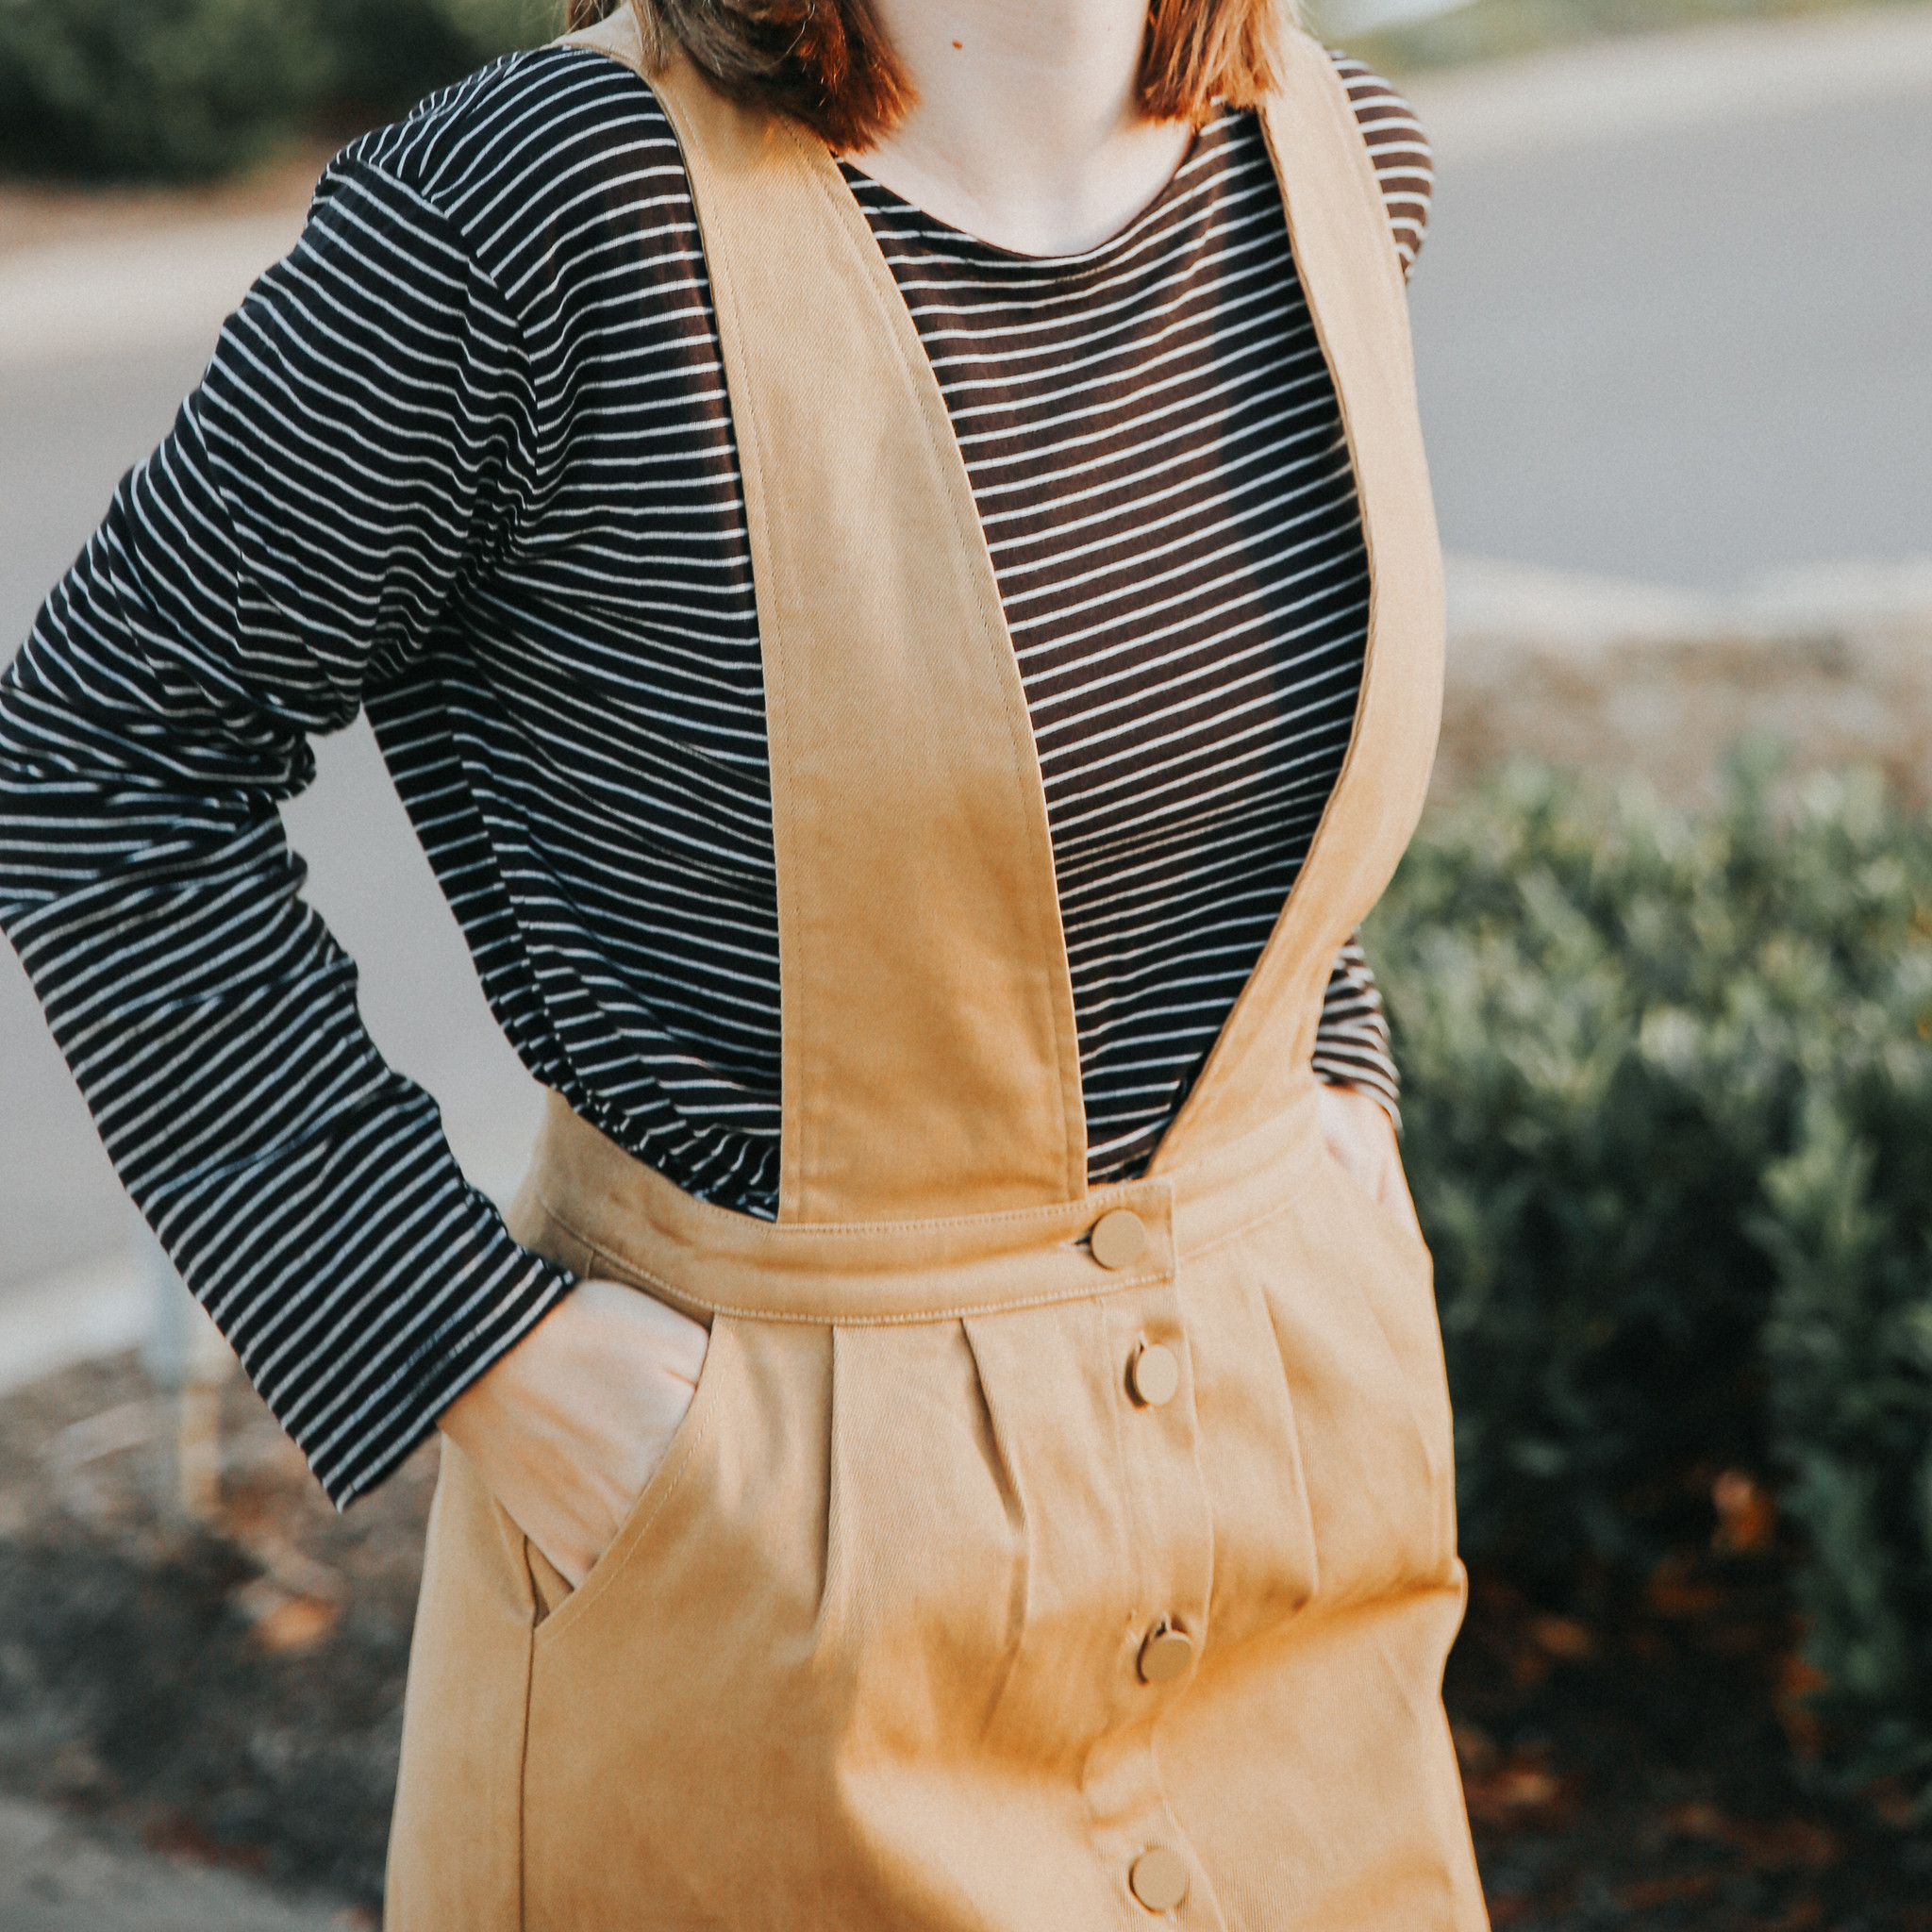 womens skirt and top.jpg